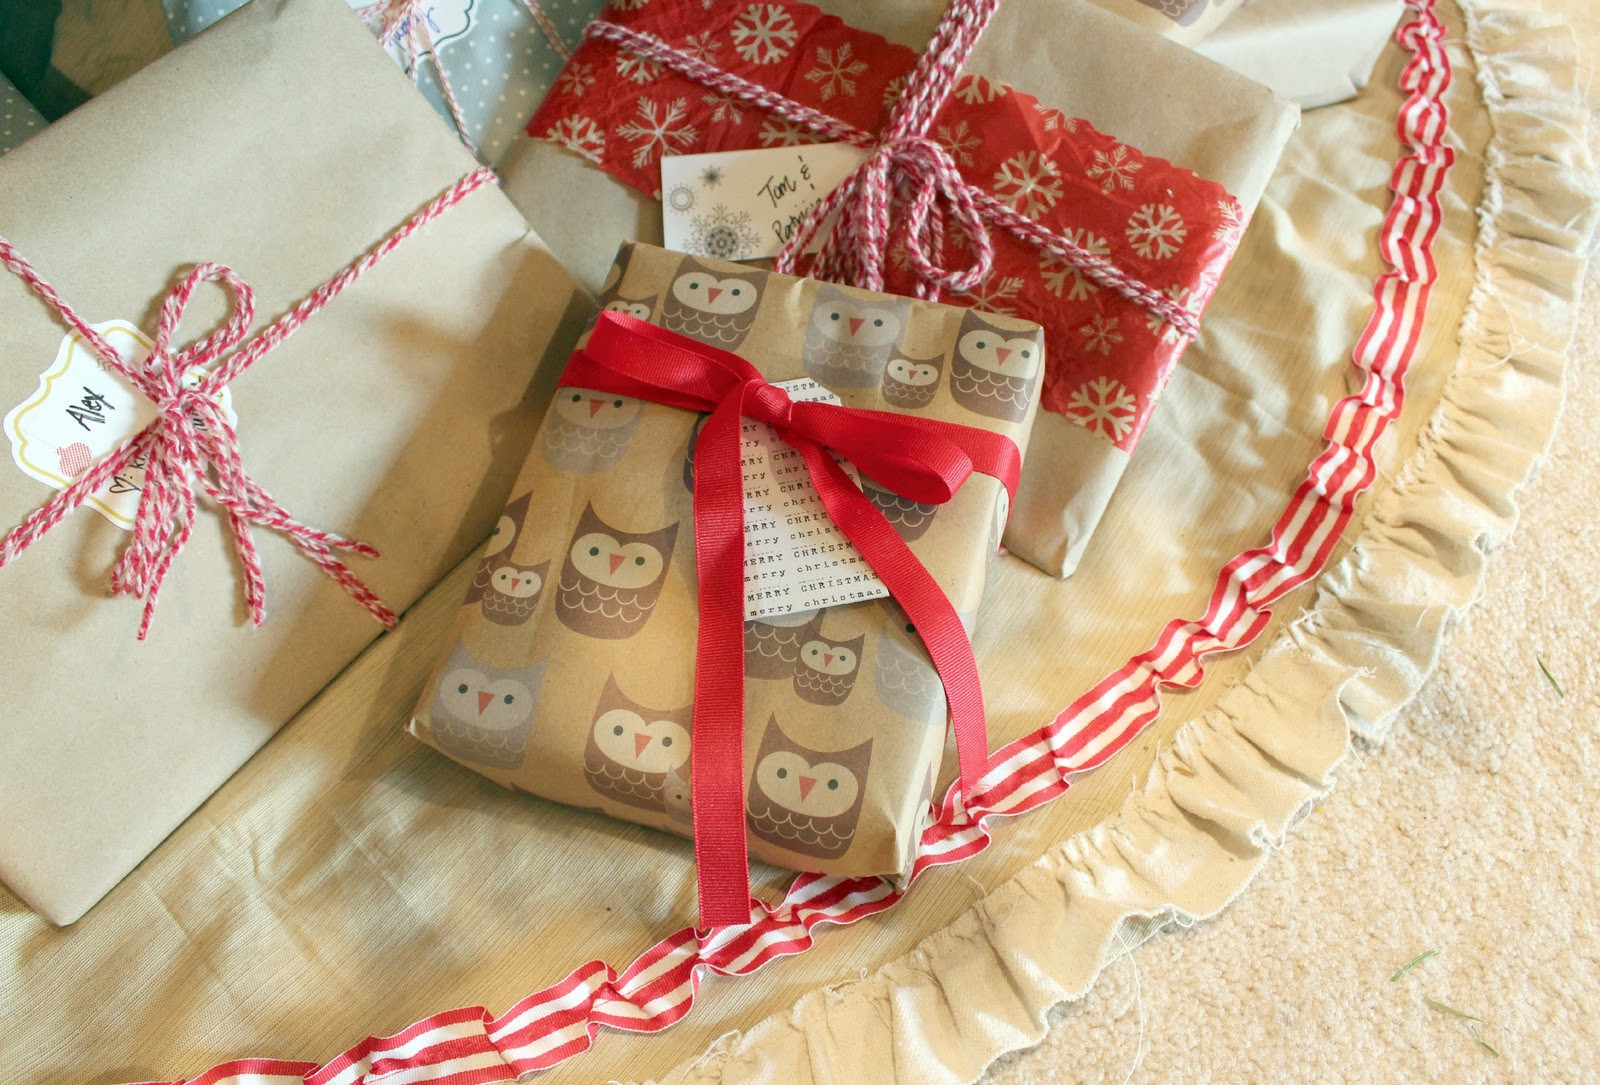 Best ideas about DIY Christmas Tree Skirts . Save or Pin 1060 Bliss a simple $7 DIY Christmas skirt Now.